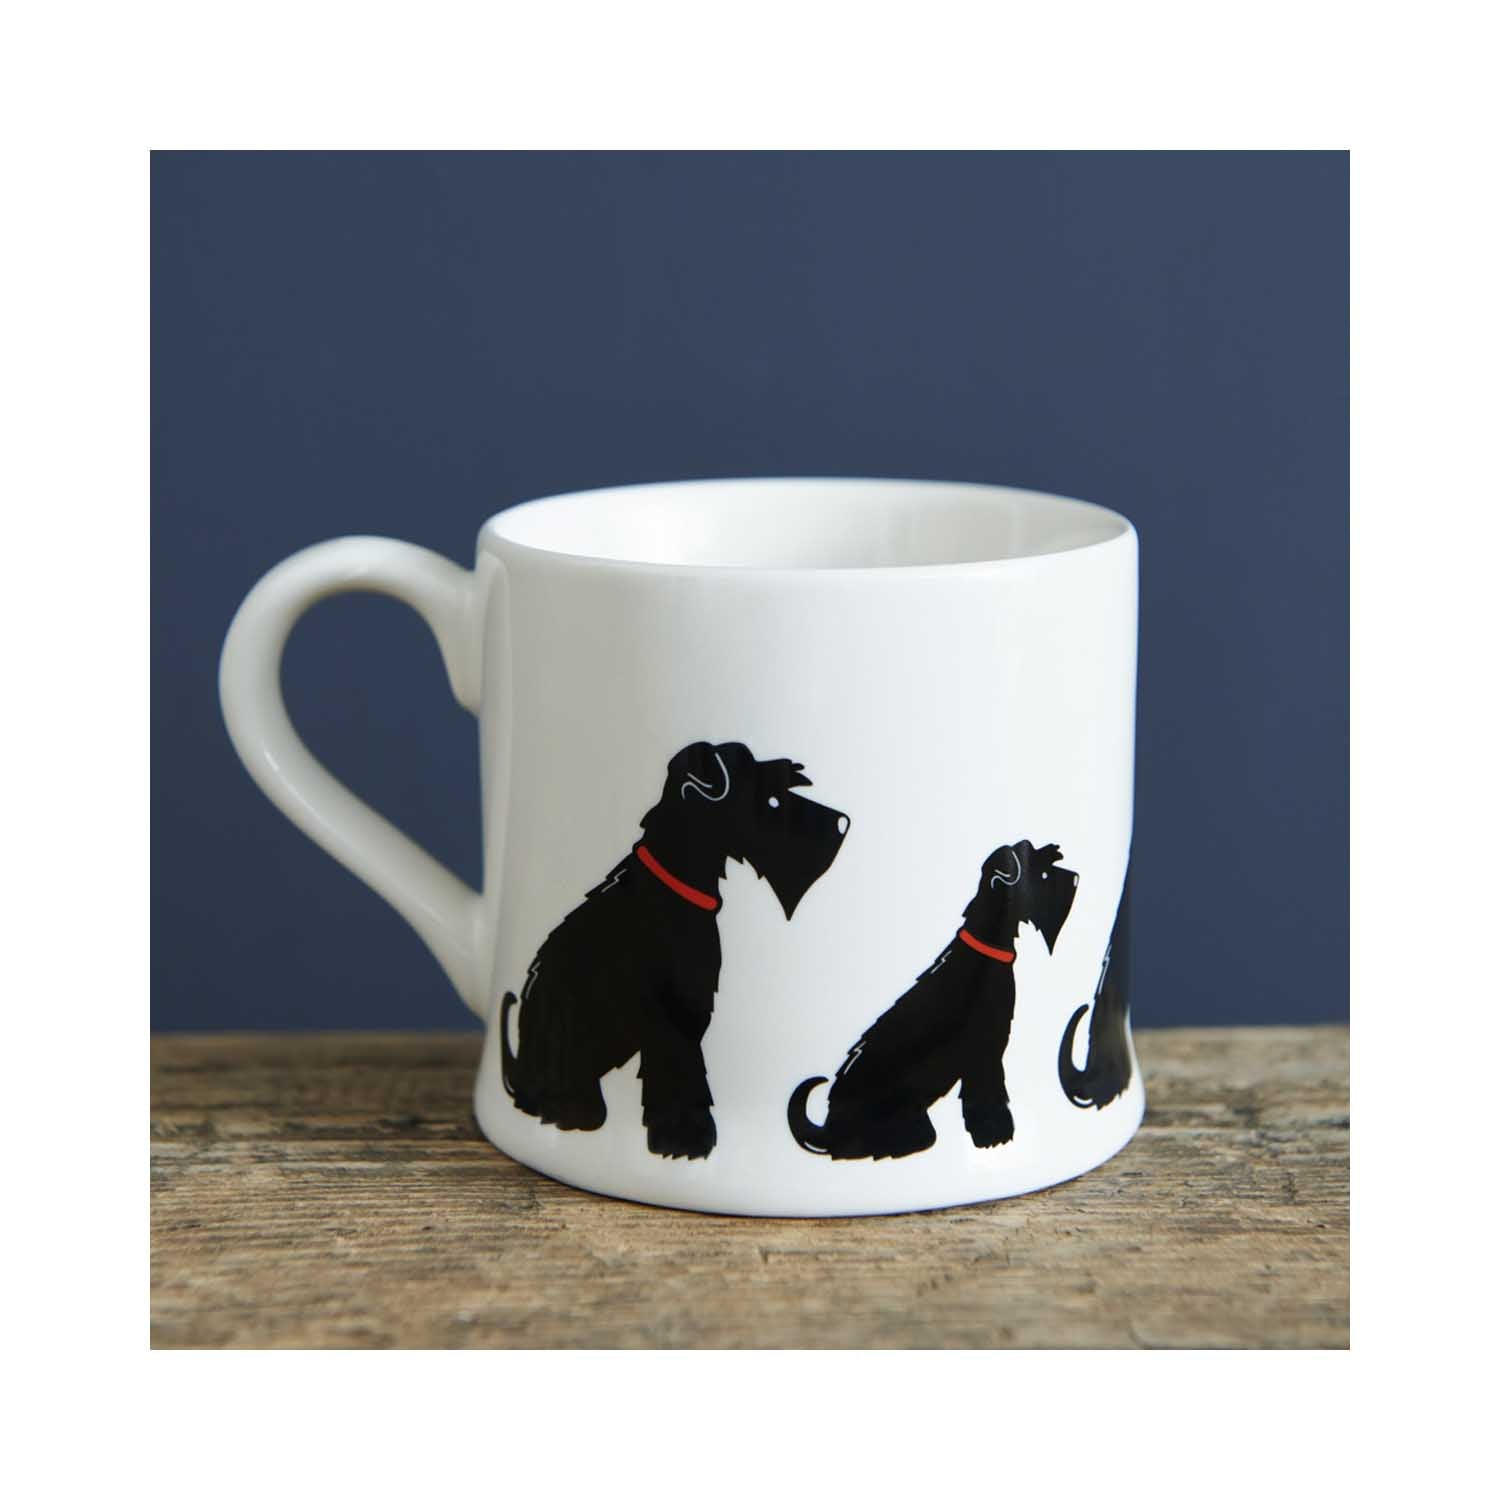 Dog Lover Gifts available at Dog Krazy Gifts - Ernie the Black Schnauzer Mug - part of the Sweet William range available from www.DogKrazyGifts.co.uk